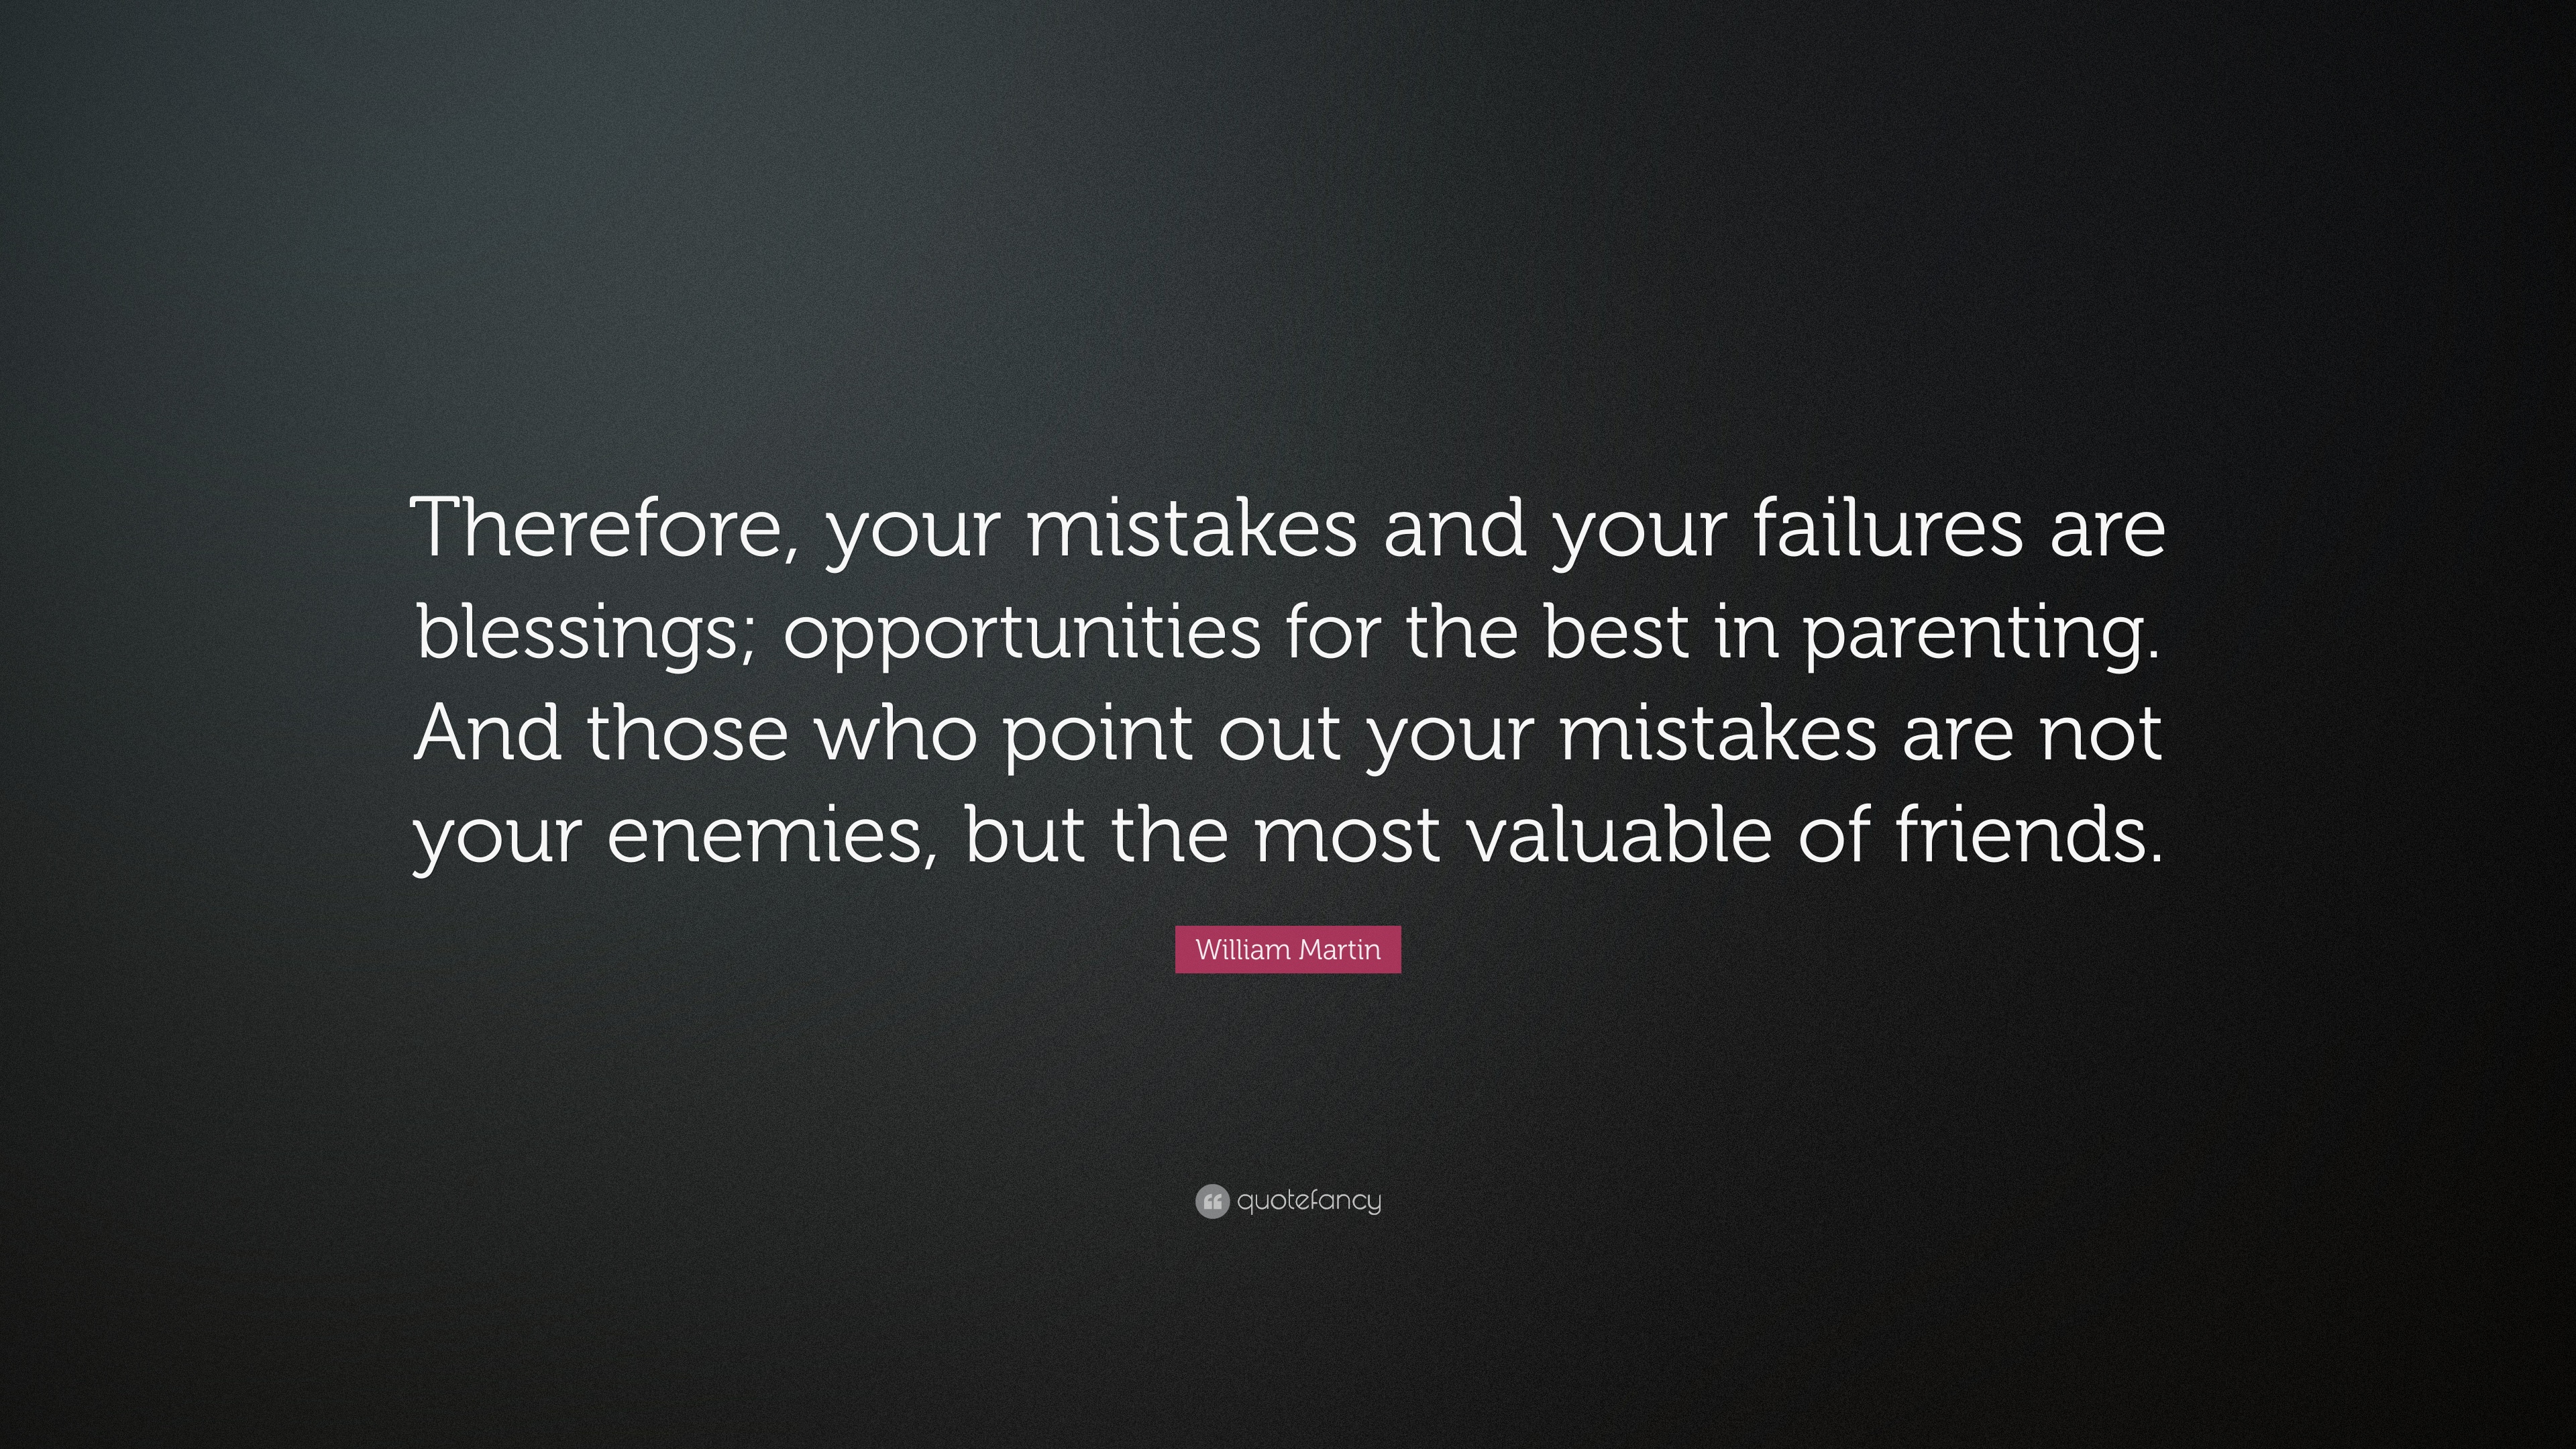 William Martin Quote: U201cTherefore, Your Mistakes And Your Failures Are  Blessings; Opportunities